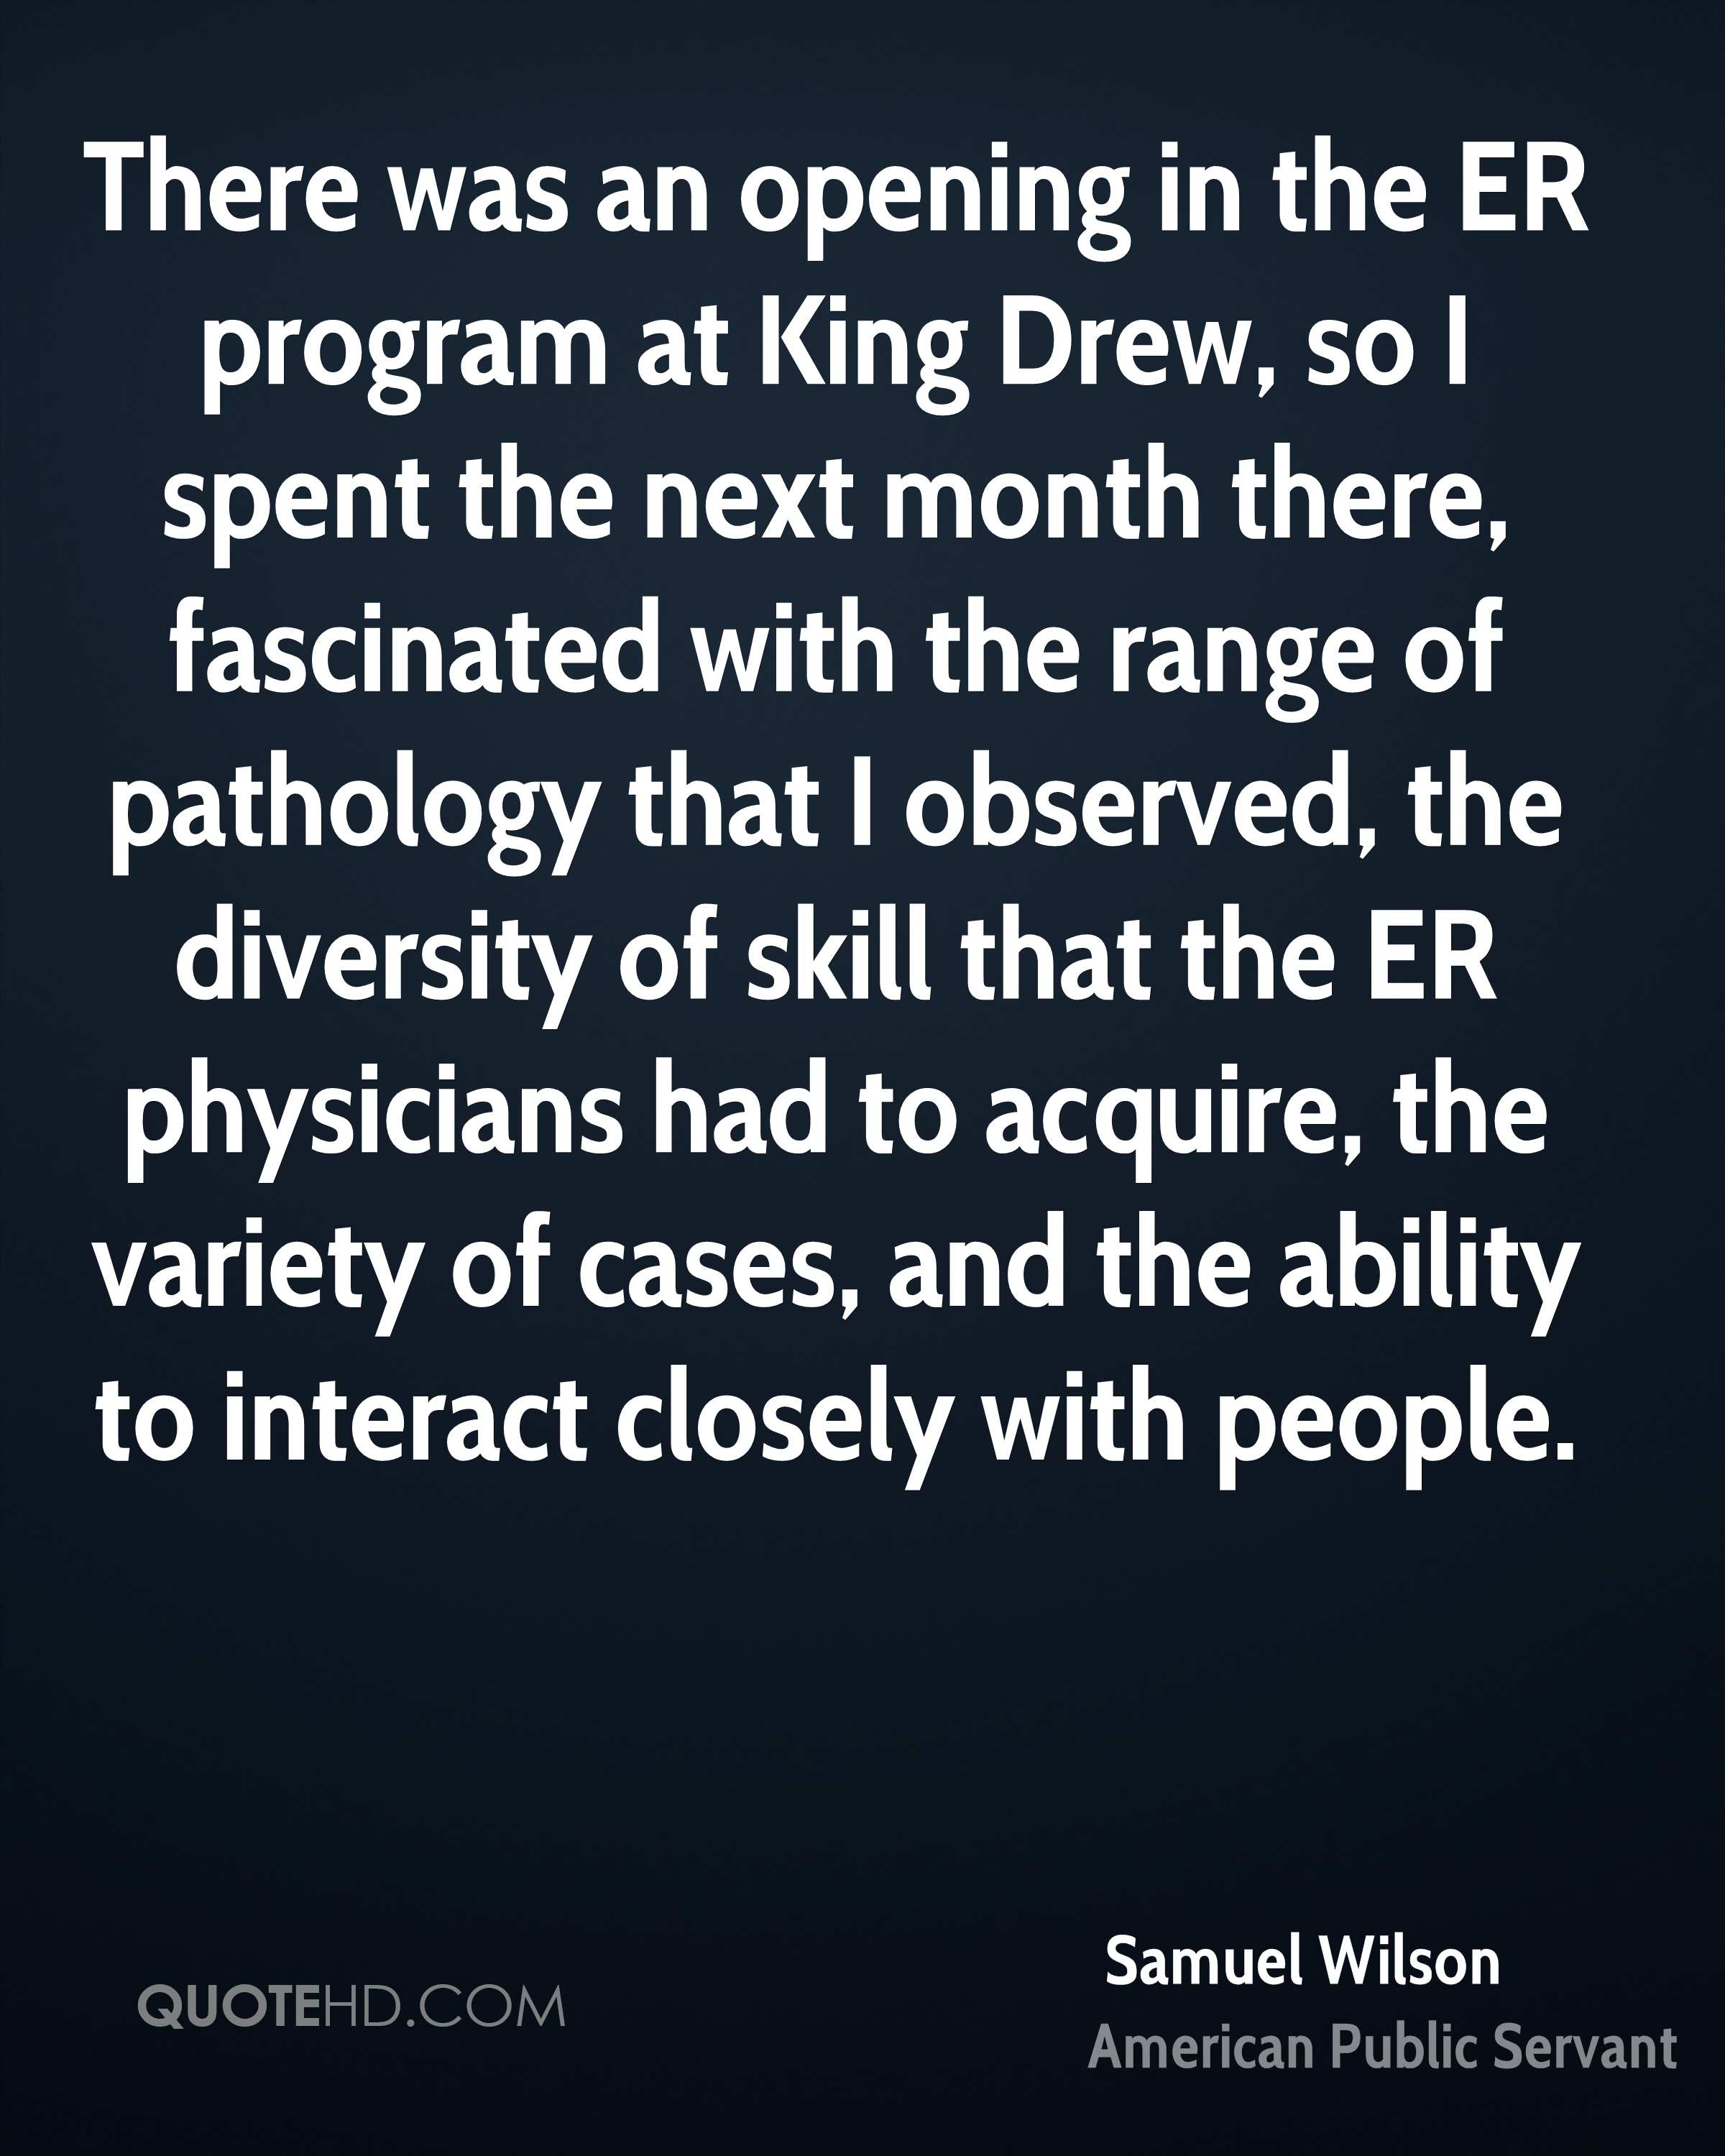 There was an opening in the ER program at King Drew, so I spent the next month there, fascinated with the range of pathology that I observed, the diversity of skill that the ER physicians had to acquire, the variety of cases, and the ability to interact closely with people.